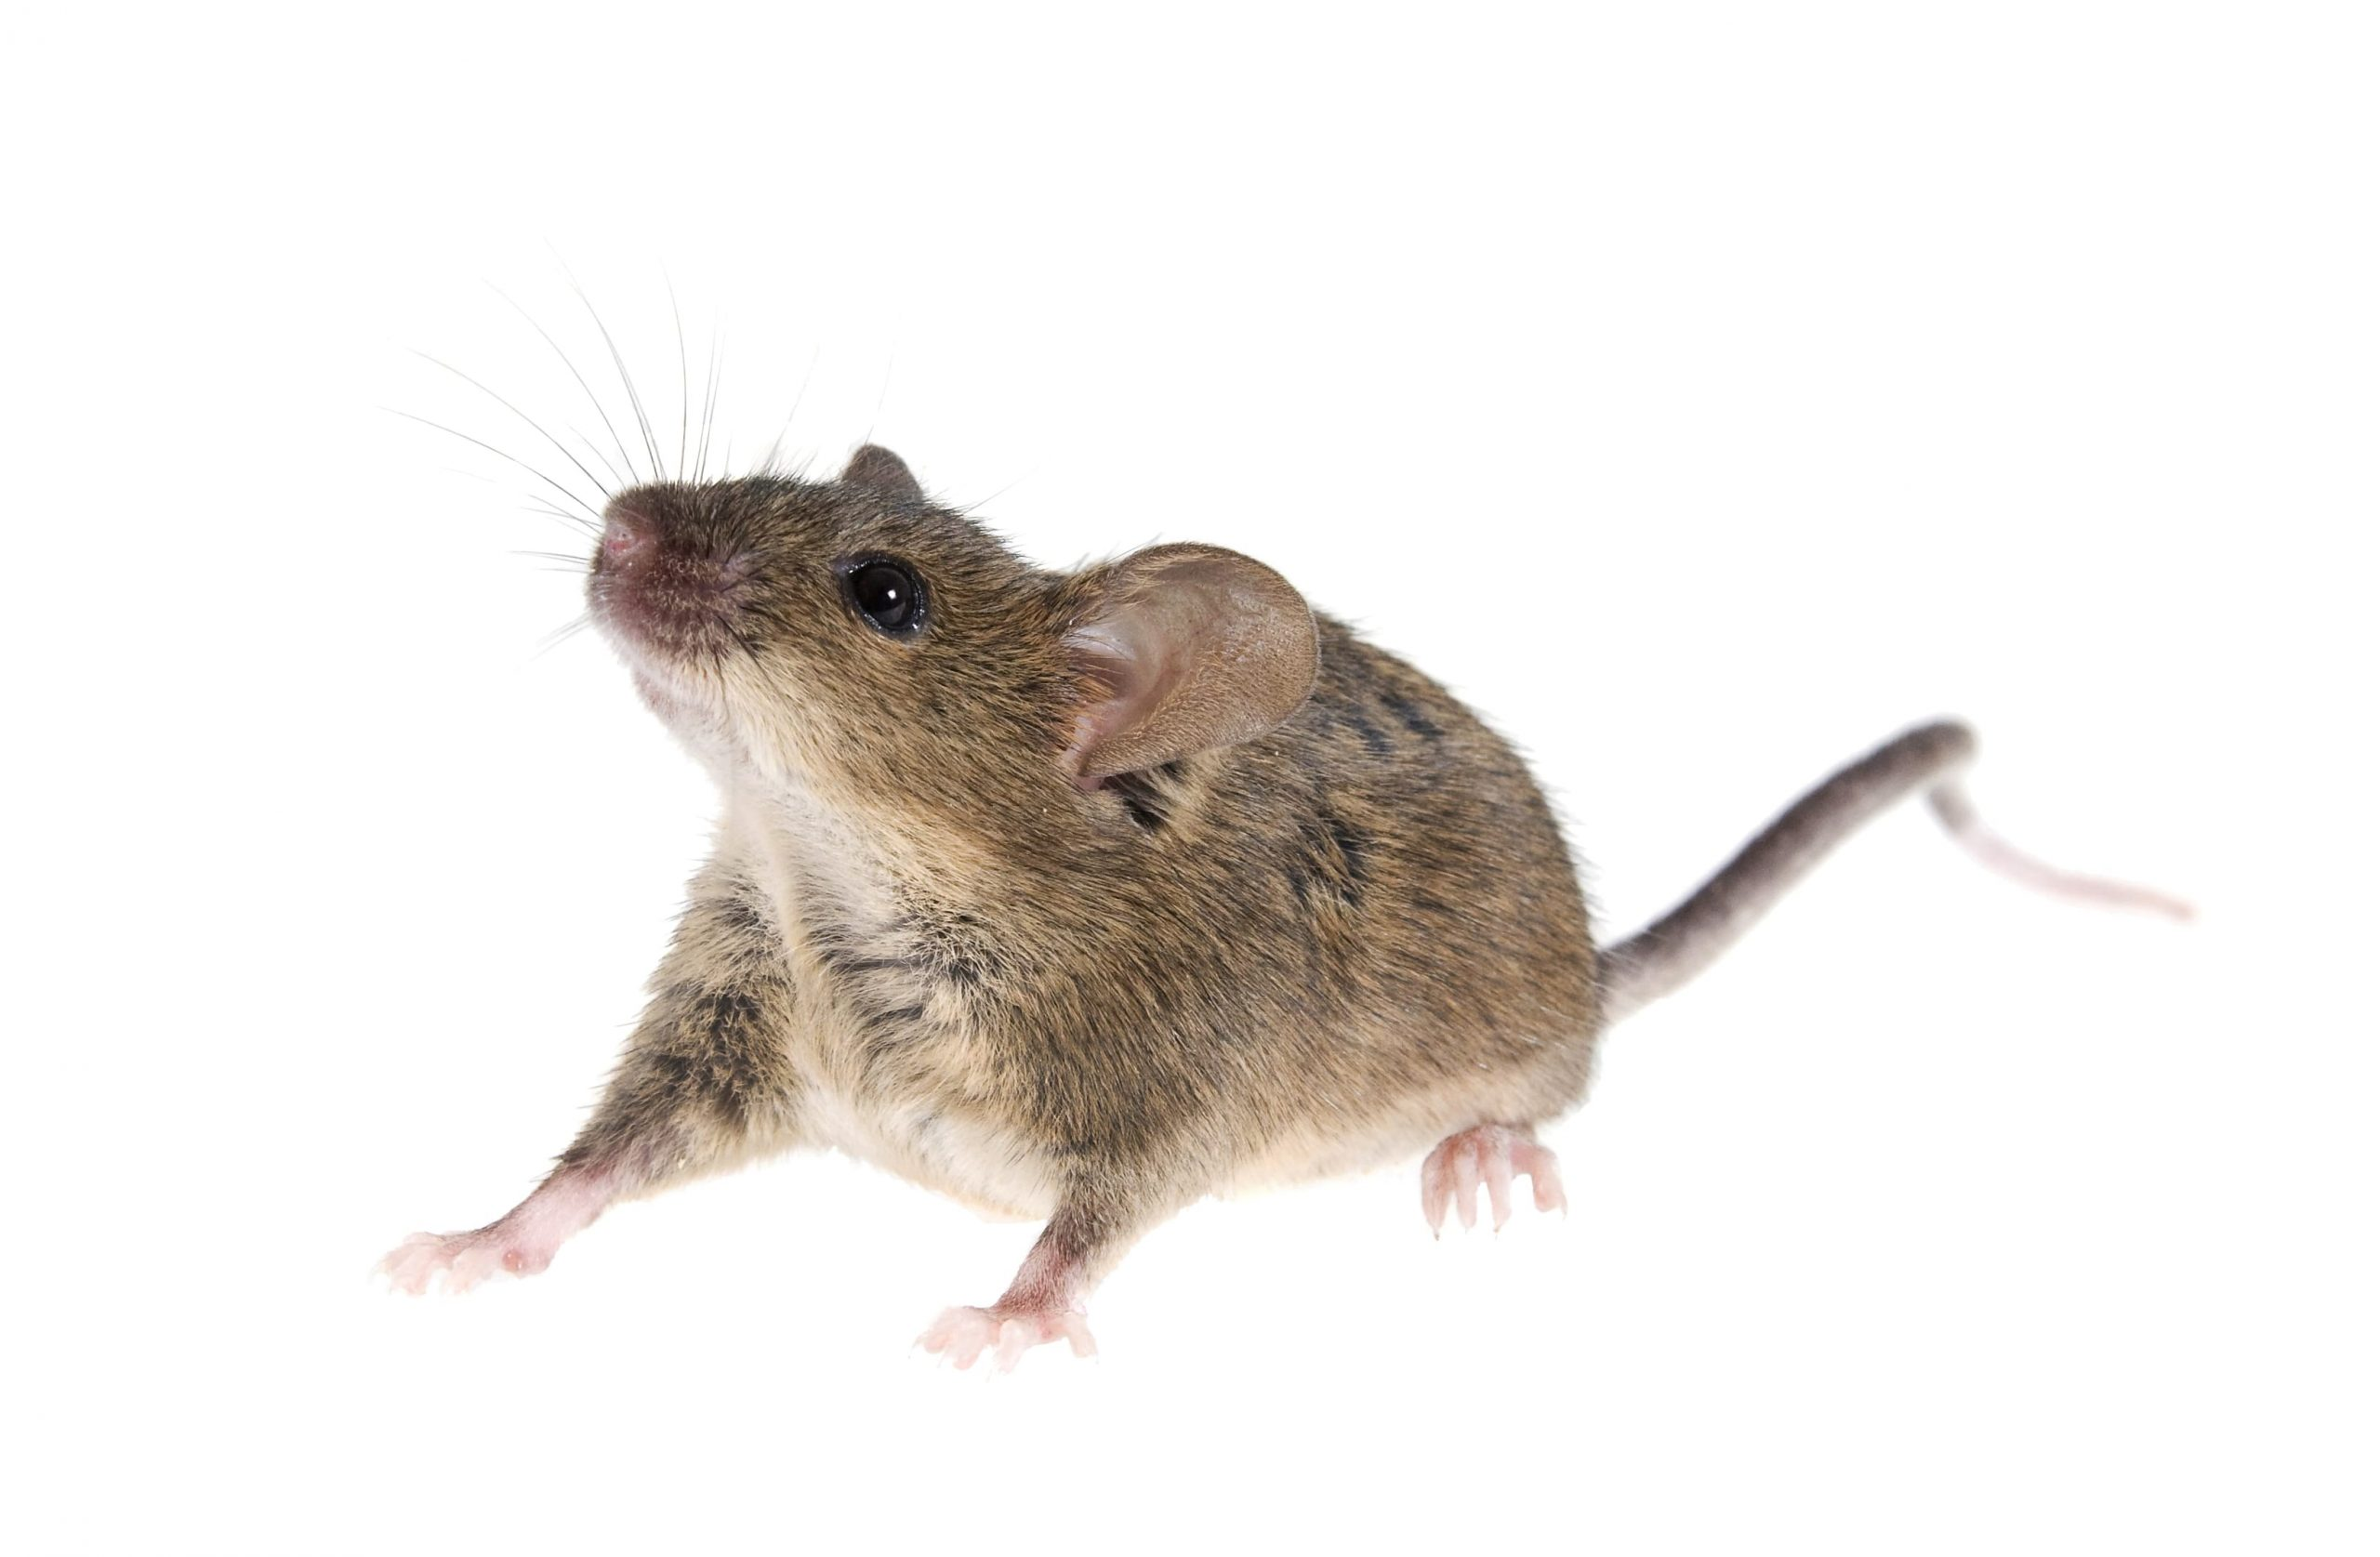 What Should I Do After a Mouse Treatment